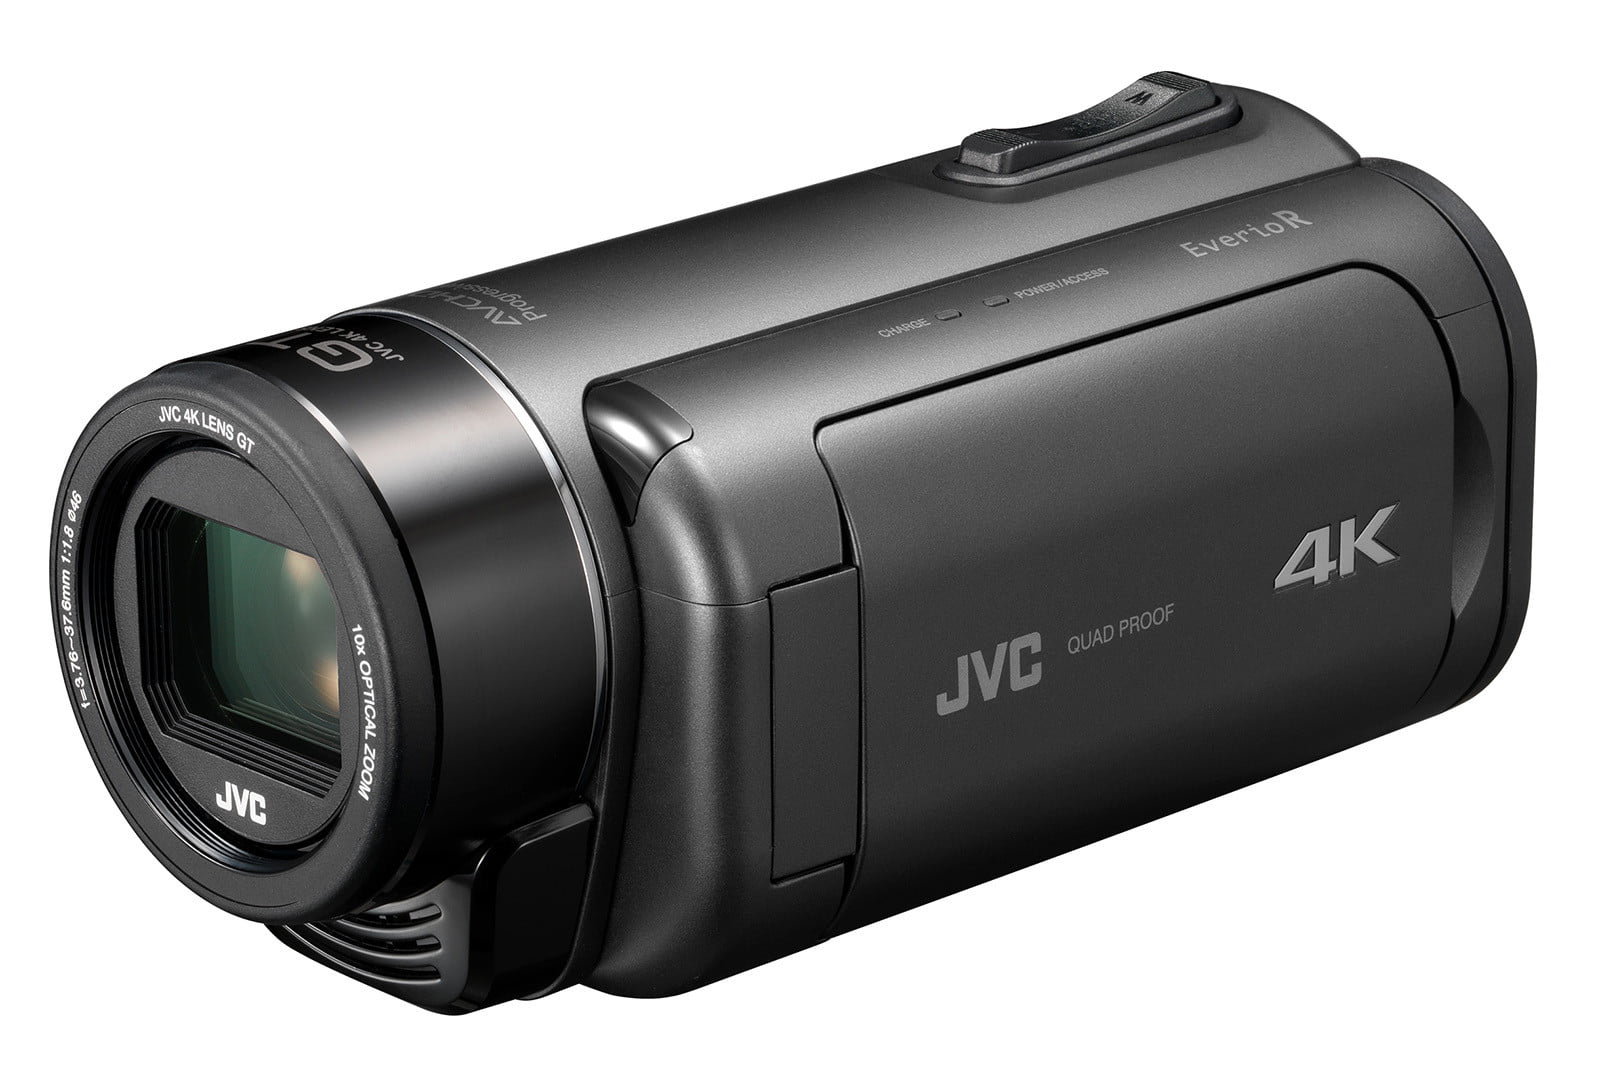 jvc everio r waterproof camcorders gz ry980h cl